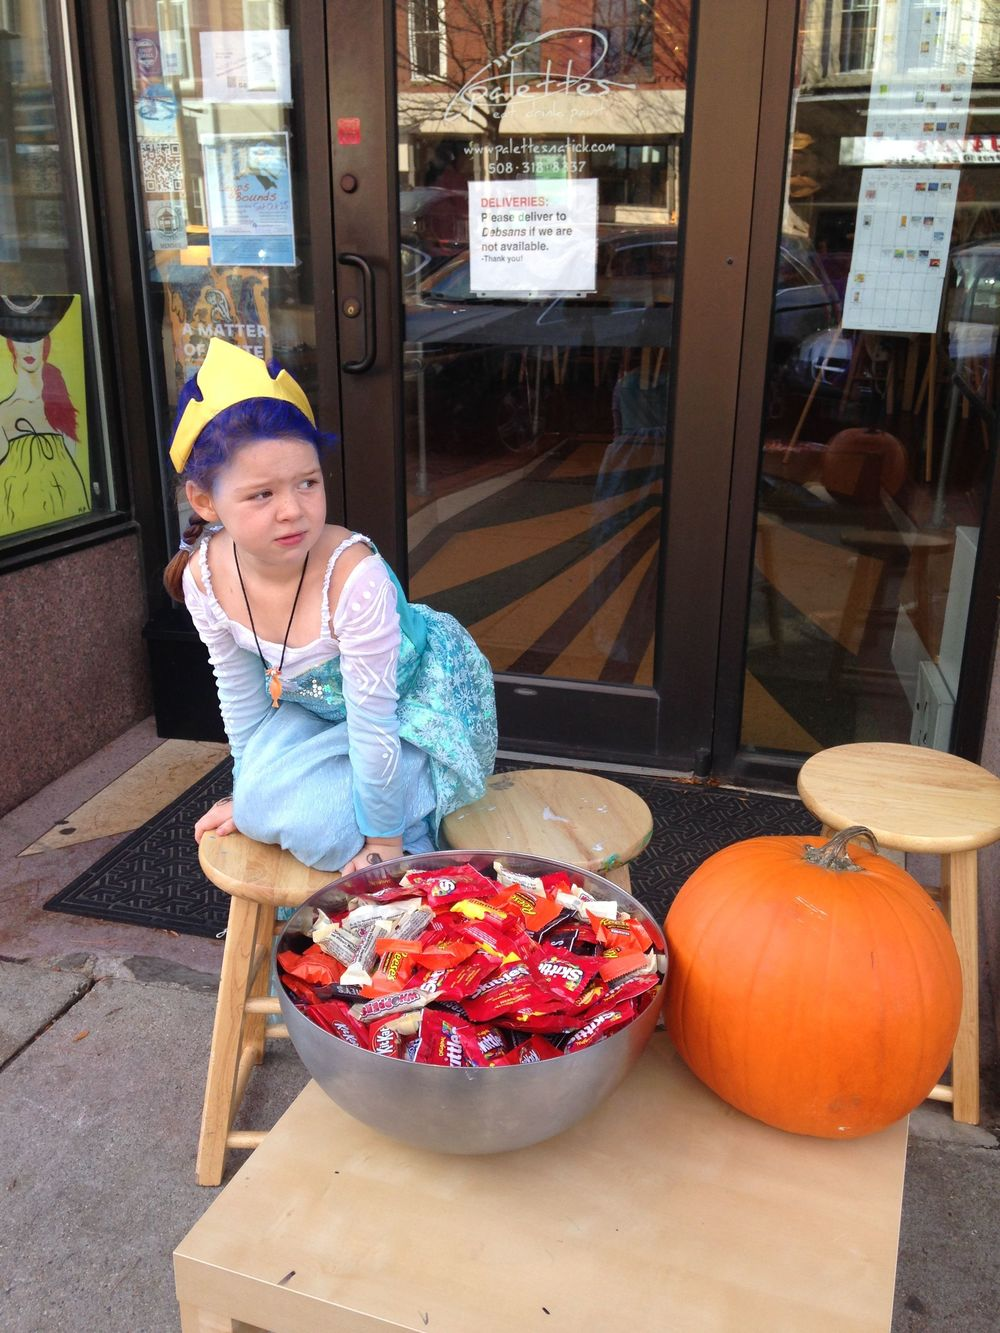 "Palettes co-owners ""Queen Ella of Natick"", her brother ""Prince Ben and Jerry"", mom and dad were at Palettes last Saturday handing out candy!"